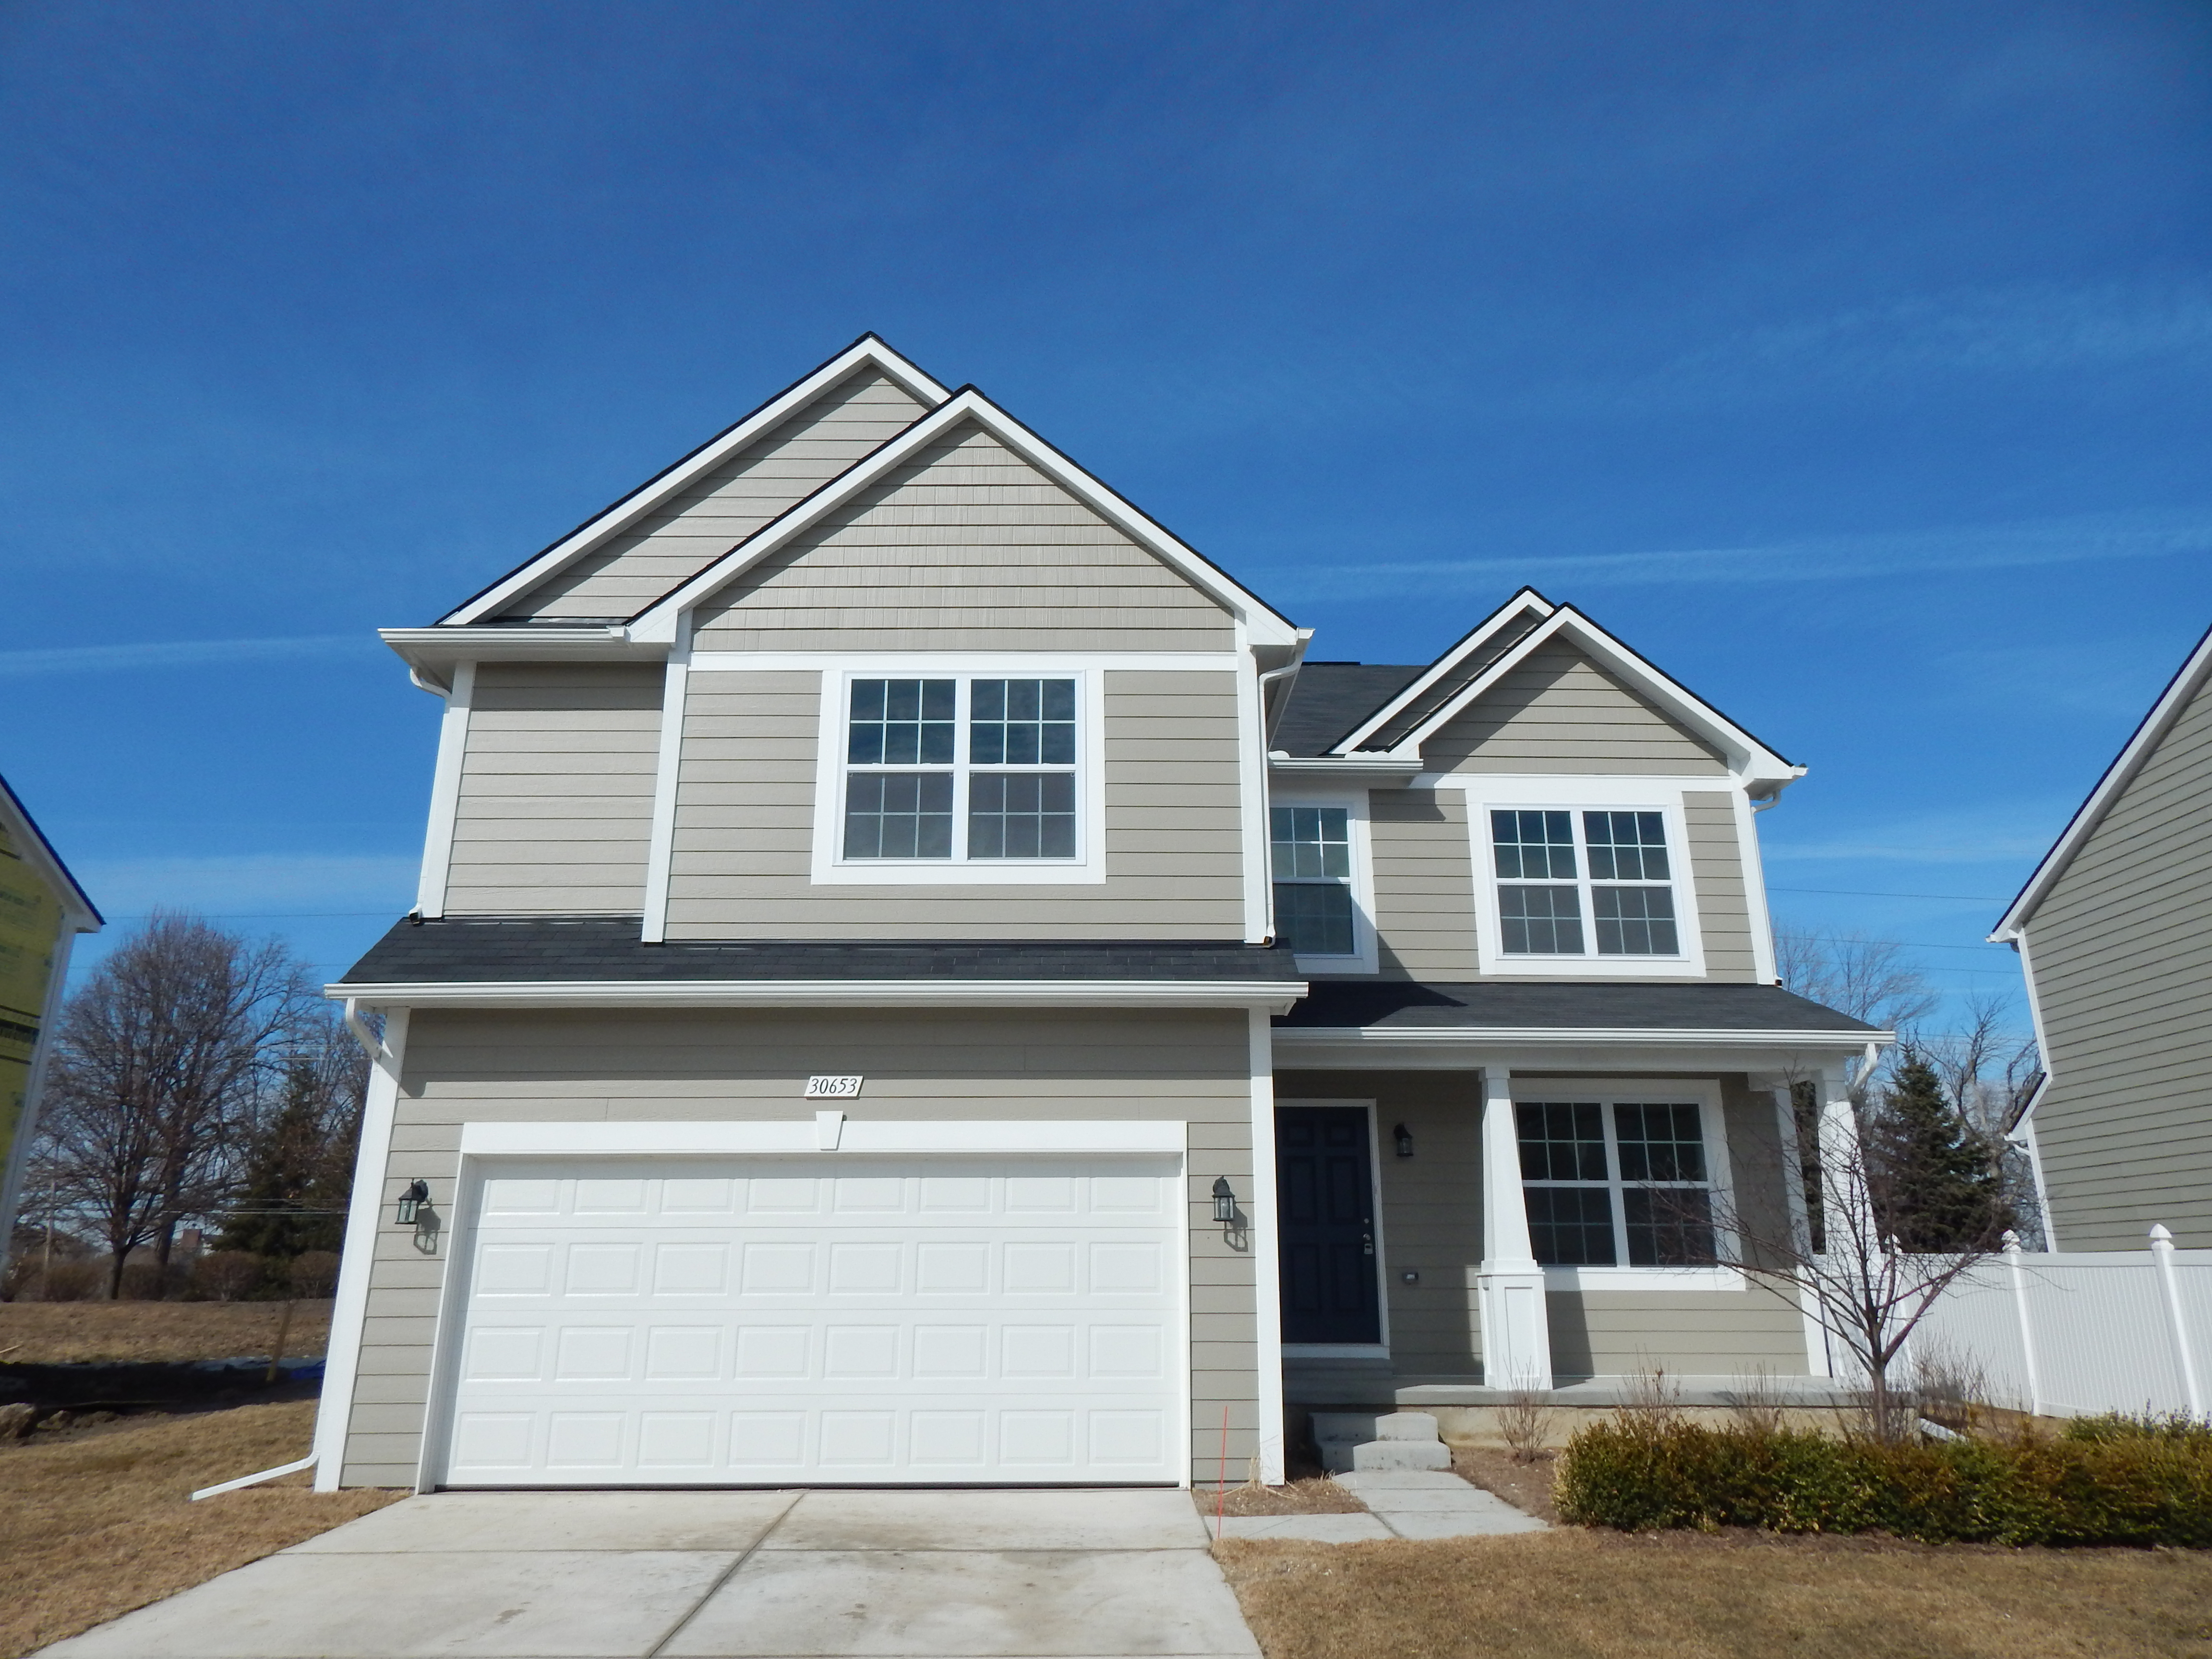 New homes in chesterfield township southeast michigan for Home builders southeast michigan